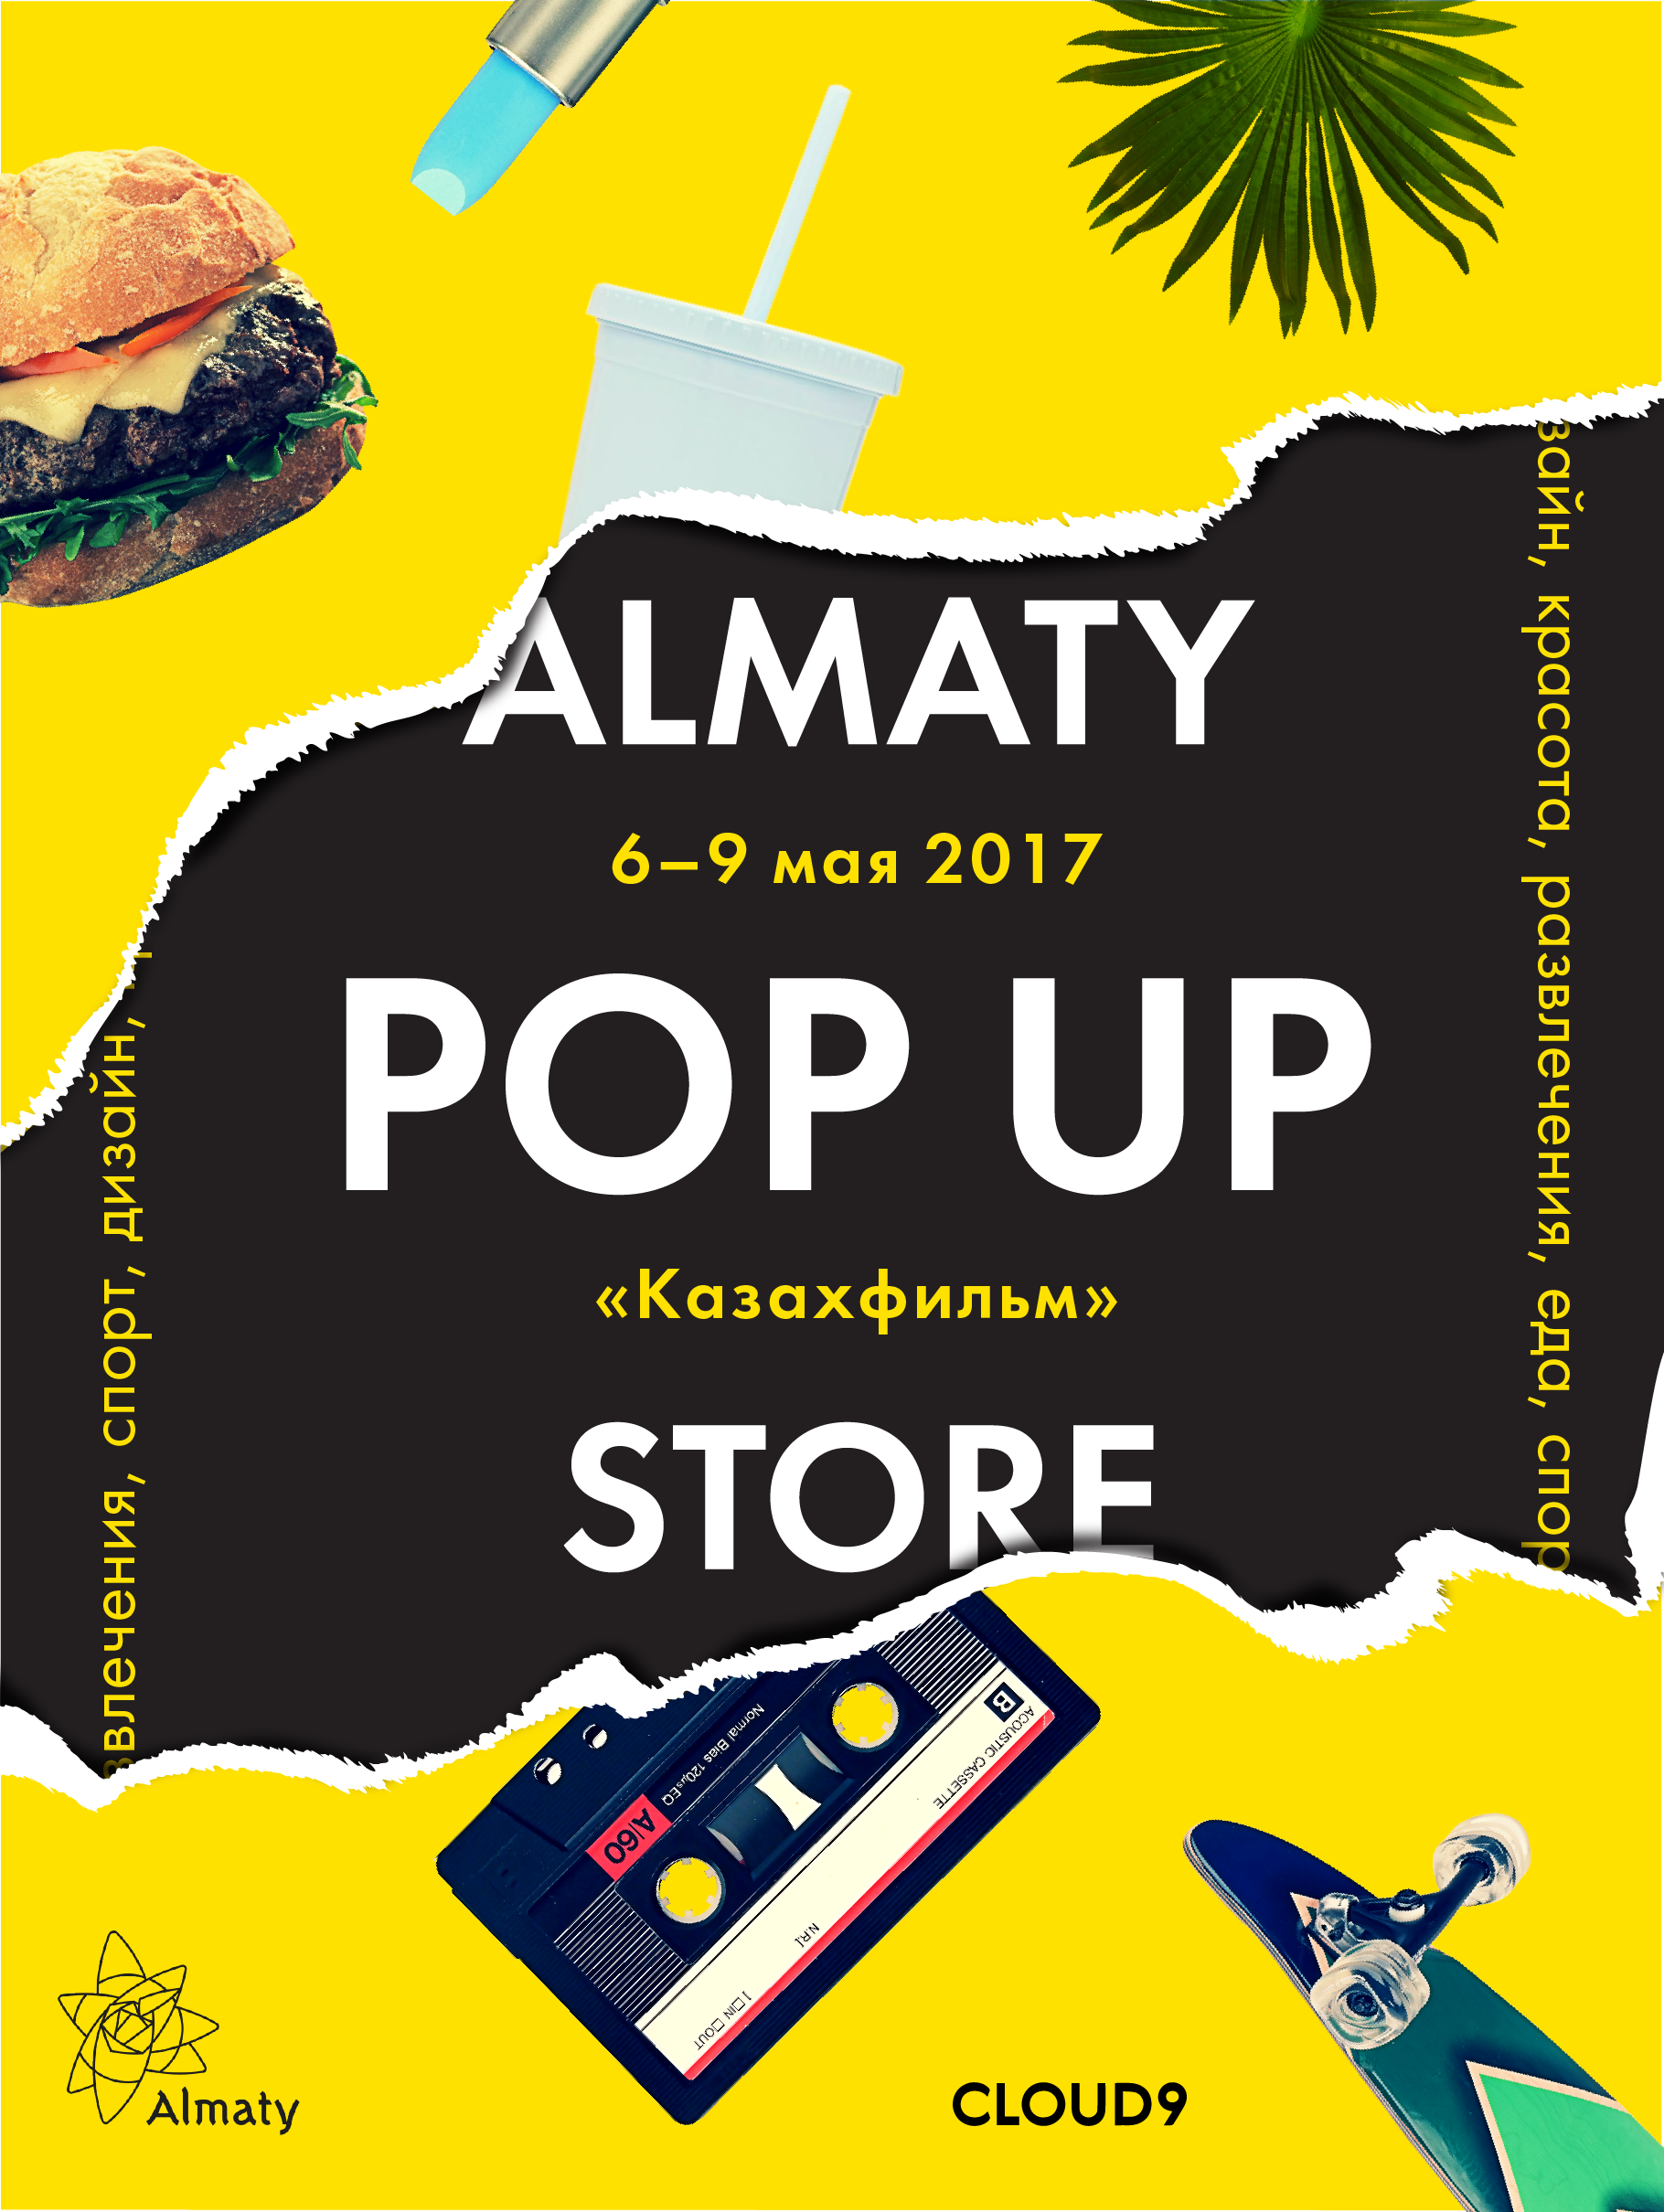 Almaty Pop-up Store 9